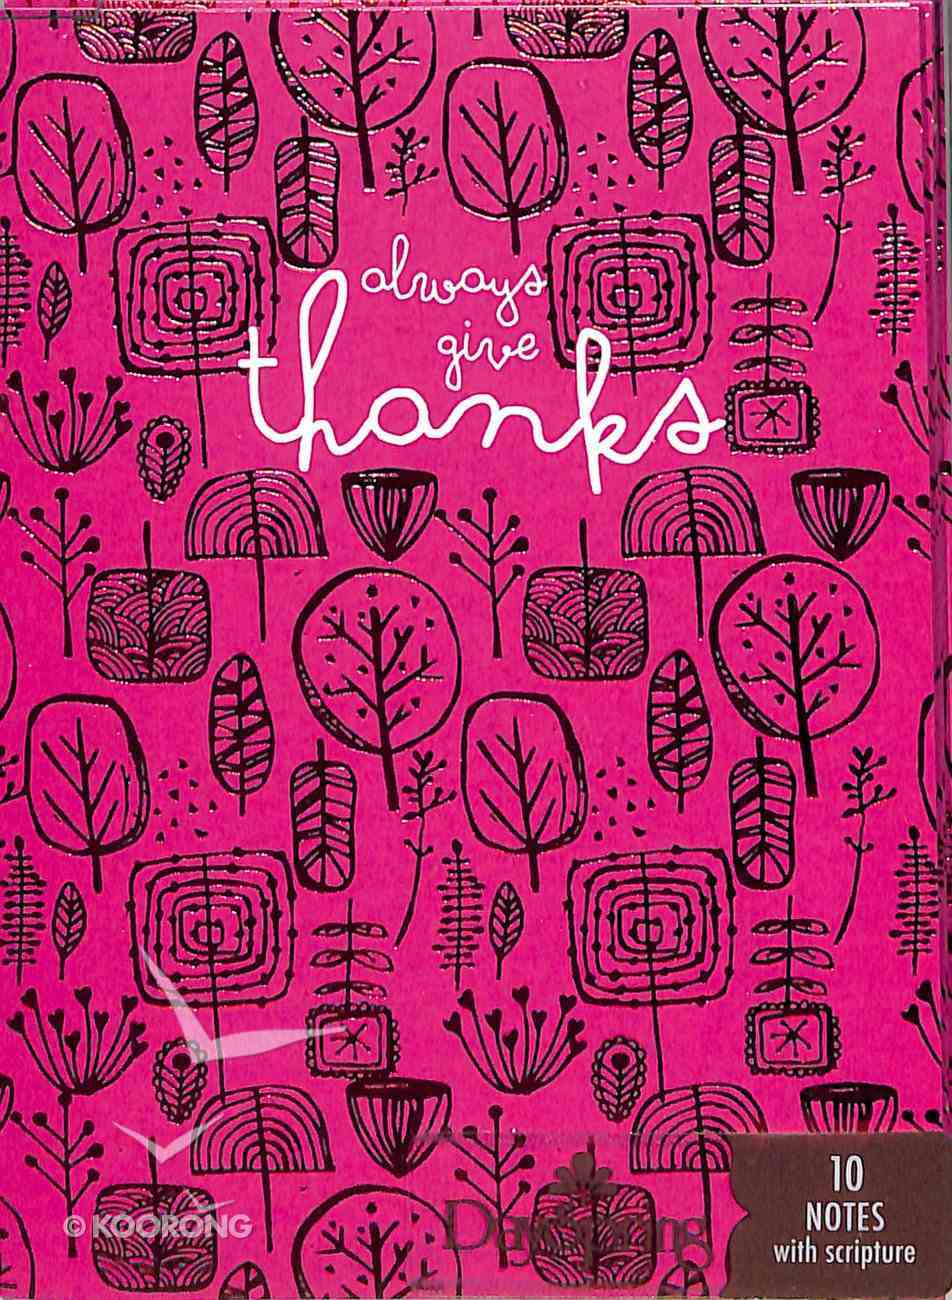 Trend Notes: Amylee Weeks - Always Give Thanks (1 Thess 5:16-18 NIV) (Pink) Stationery